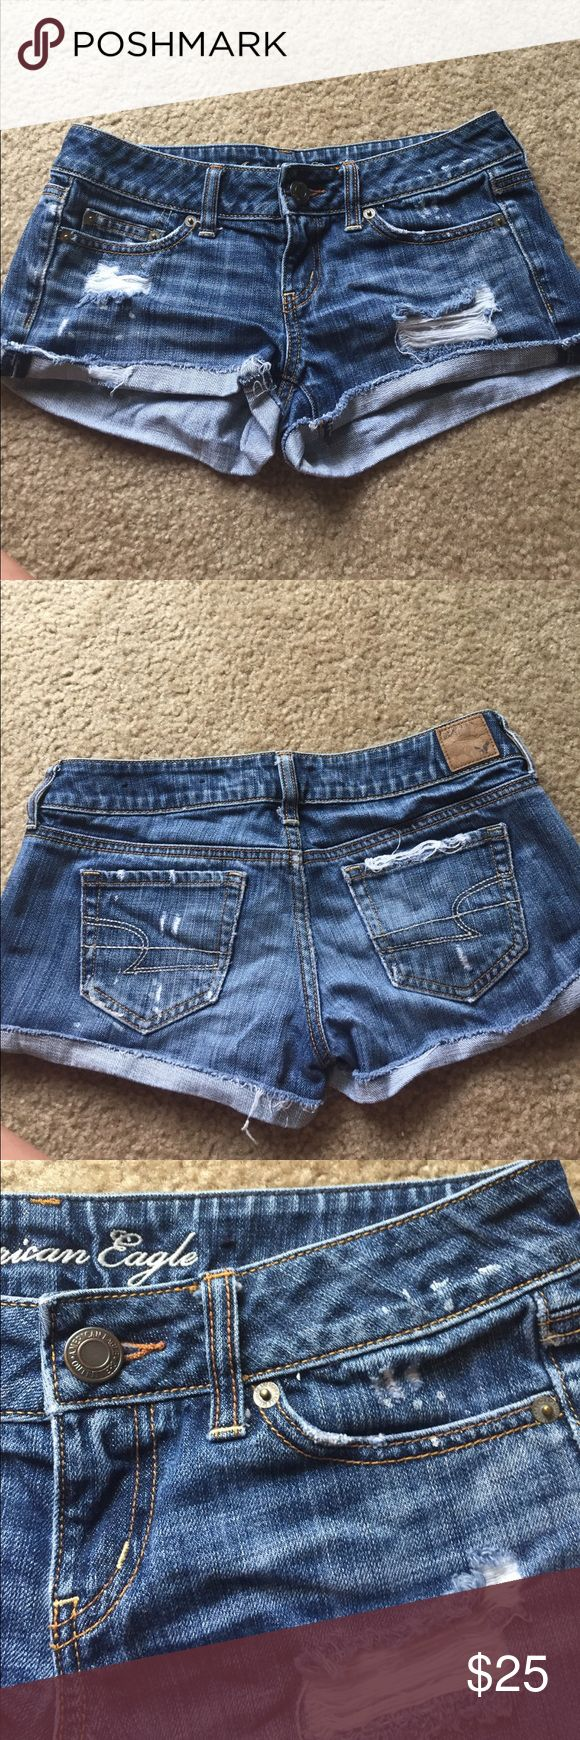 American eagle jean shorts Women's American eagle jean shorts. Size 2. Vintage wash/ look. Very comfortable American Eagle Outfitters Shorts Jean Shorts